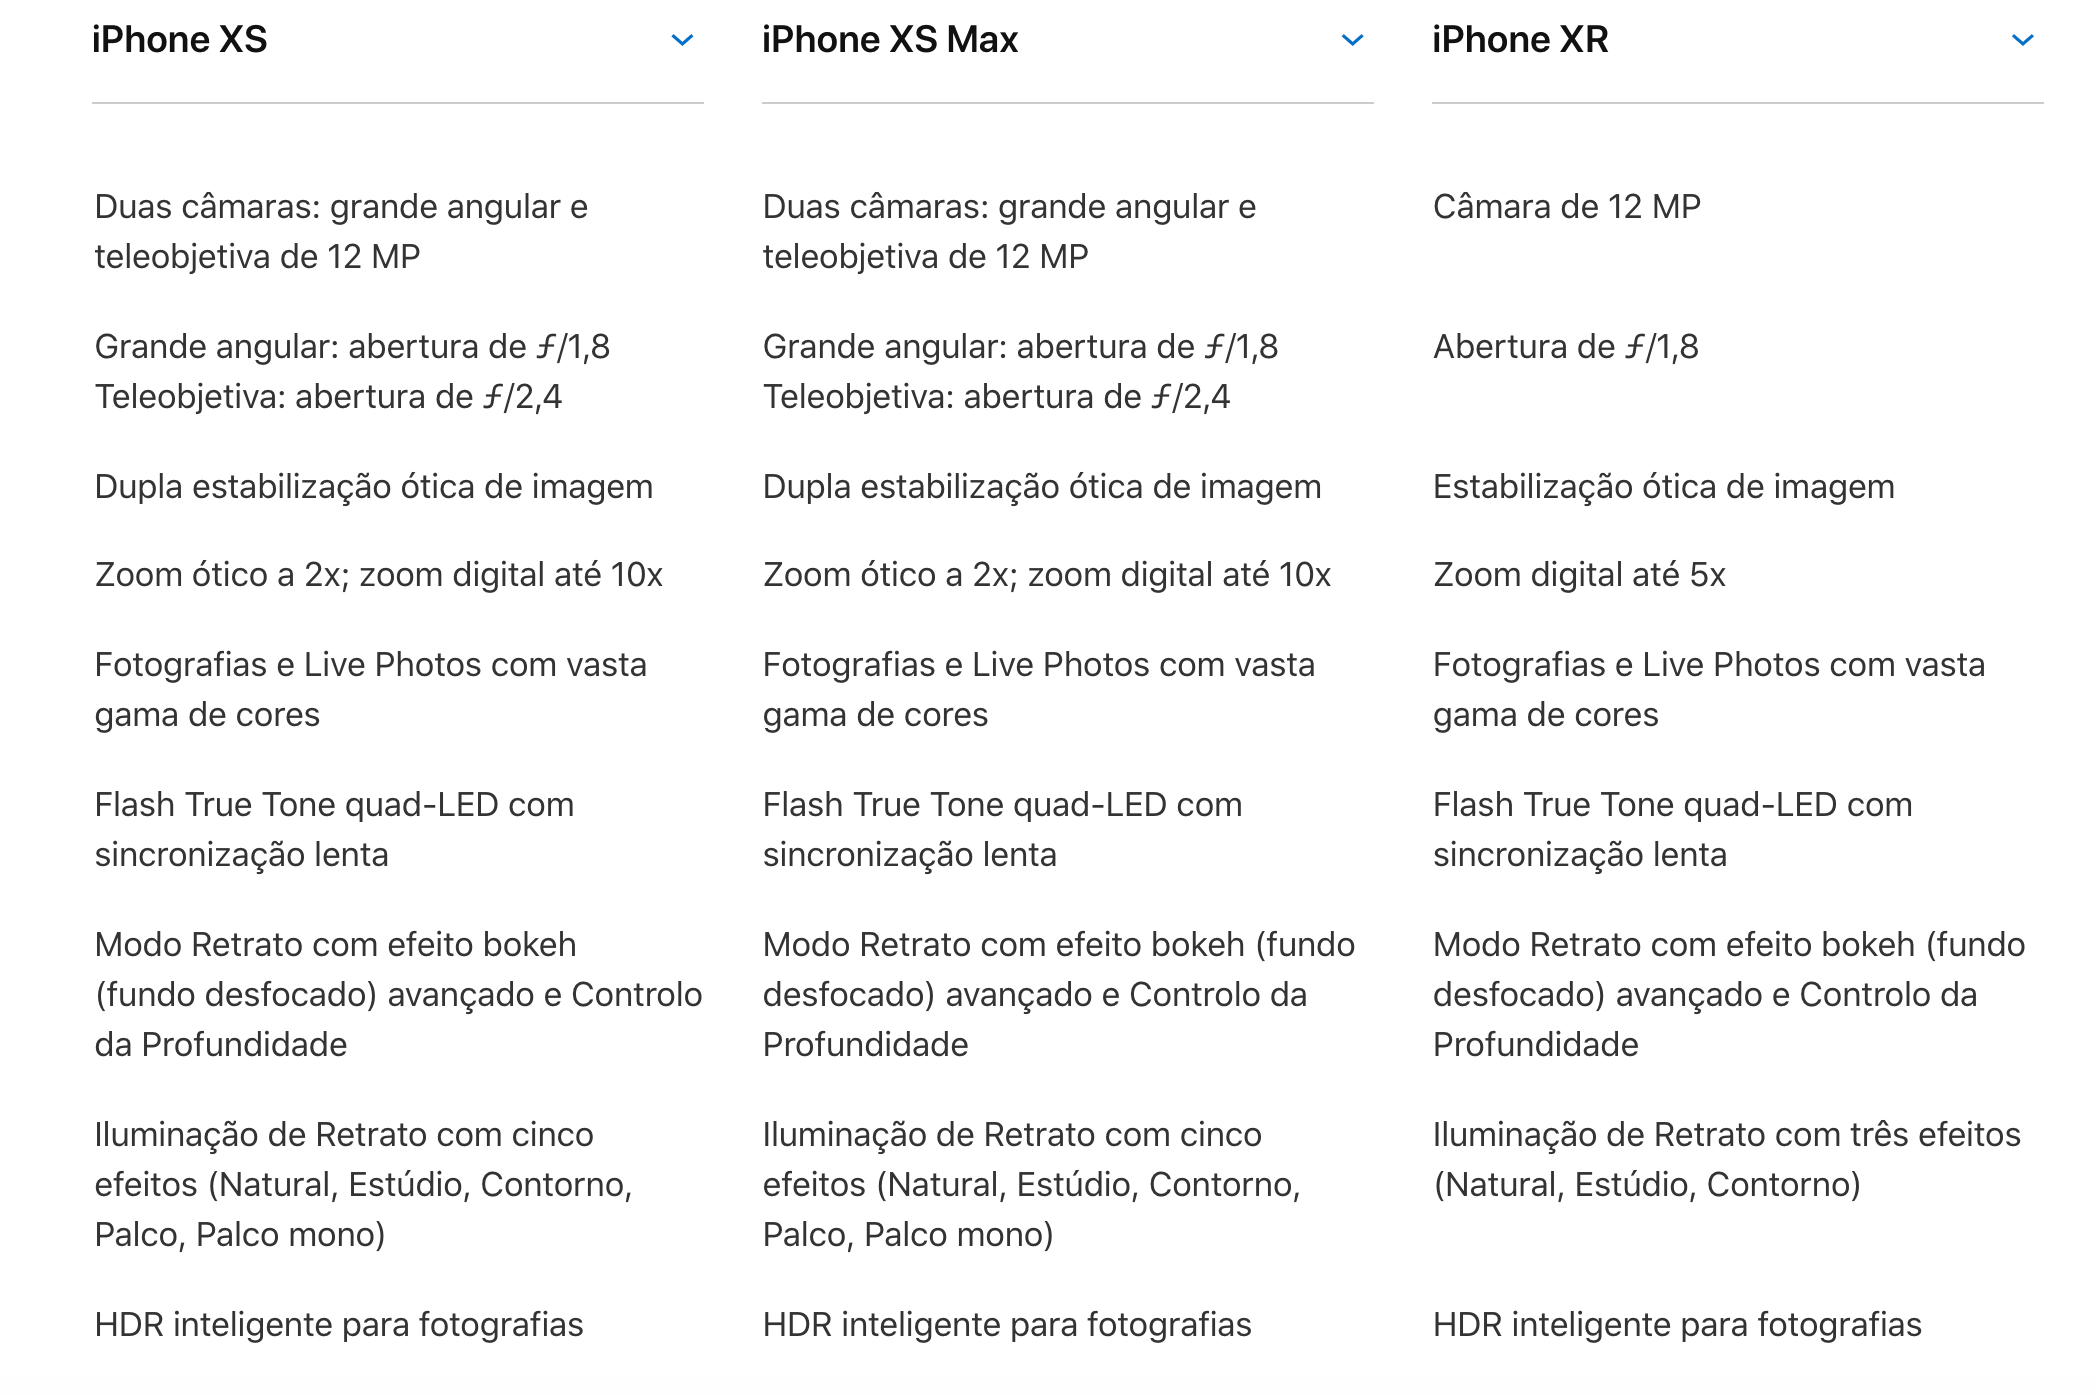 iPHONE XR Compare